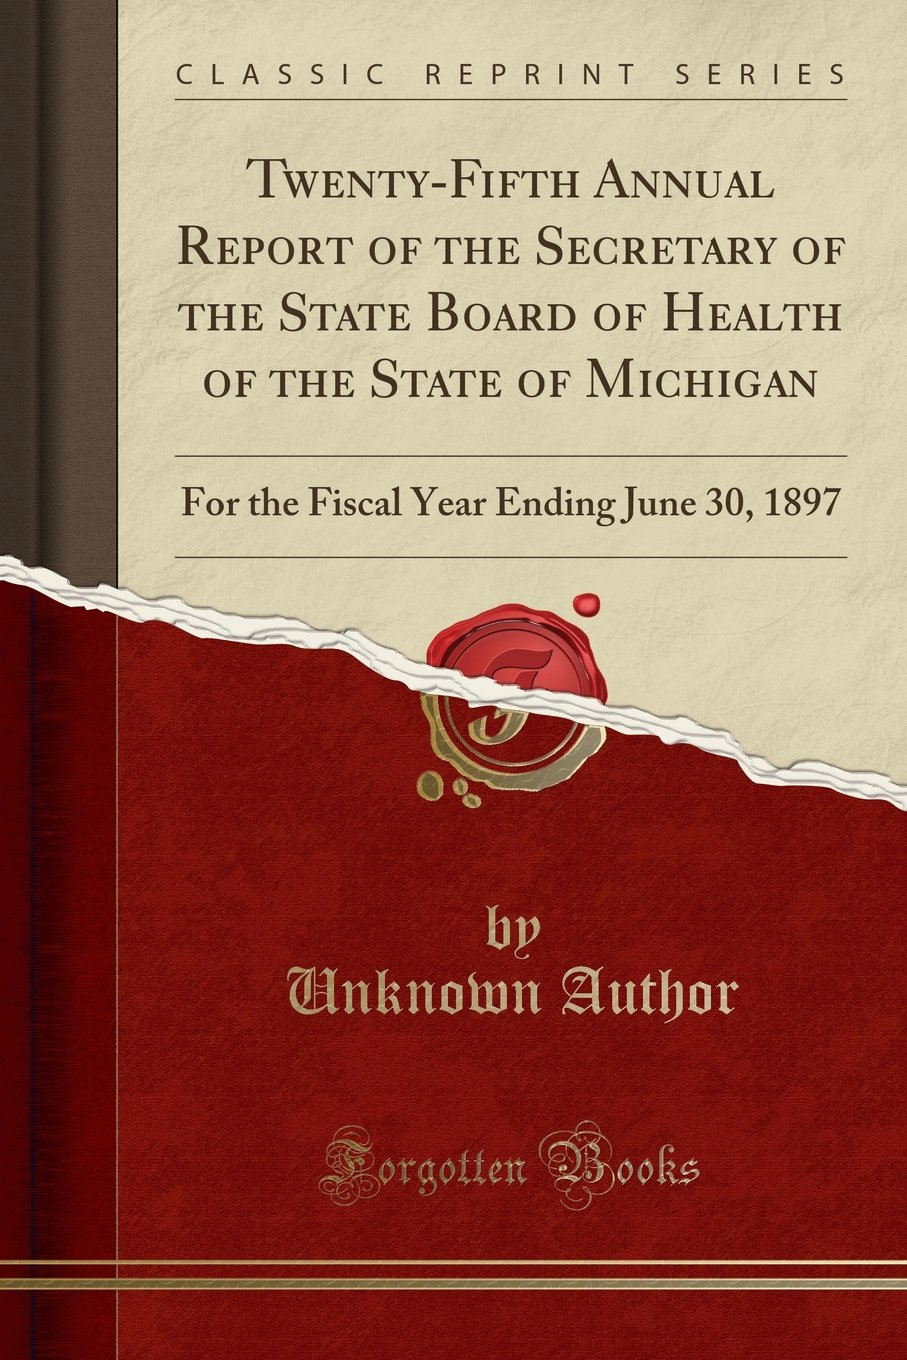 Twenty-Fifth Annual Report of the Secretary of the State Board of Health of the State of Michigan: For the Fiscal Year Ending June 30, 1897 (Classic Reprint) pdf epub